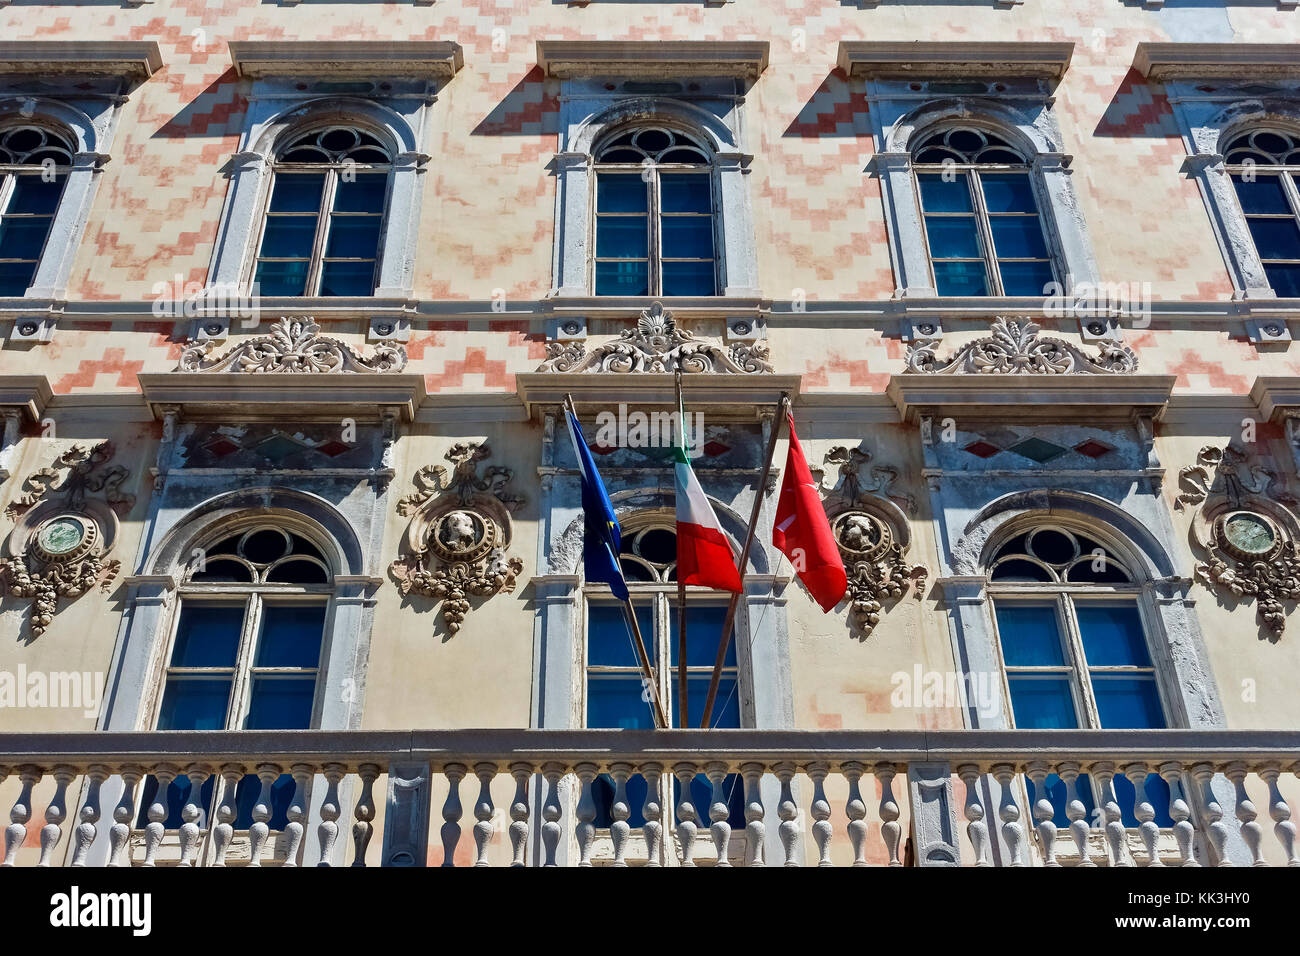 Palazzo Gopcevich, which houses Carlo Schmidl Civic Theatrical Museum. Elegant, amazing building facade. Trieste, - Stock Image